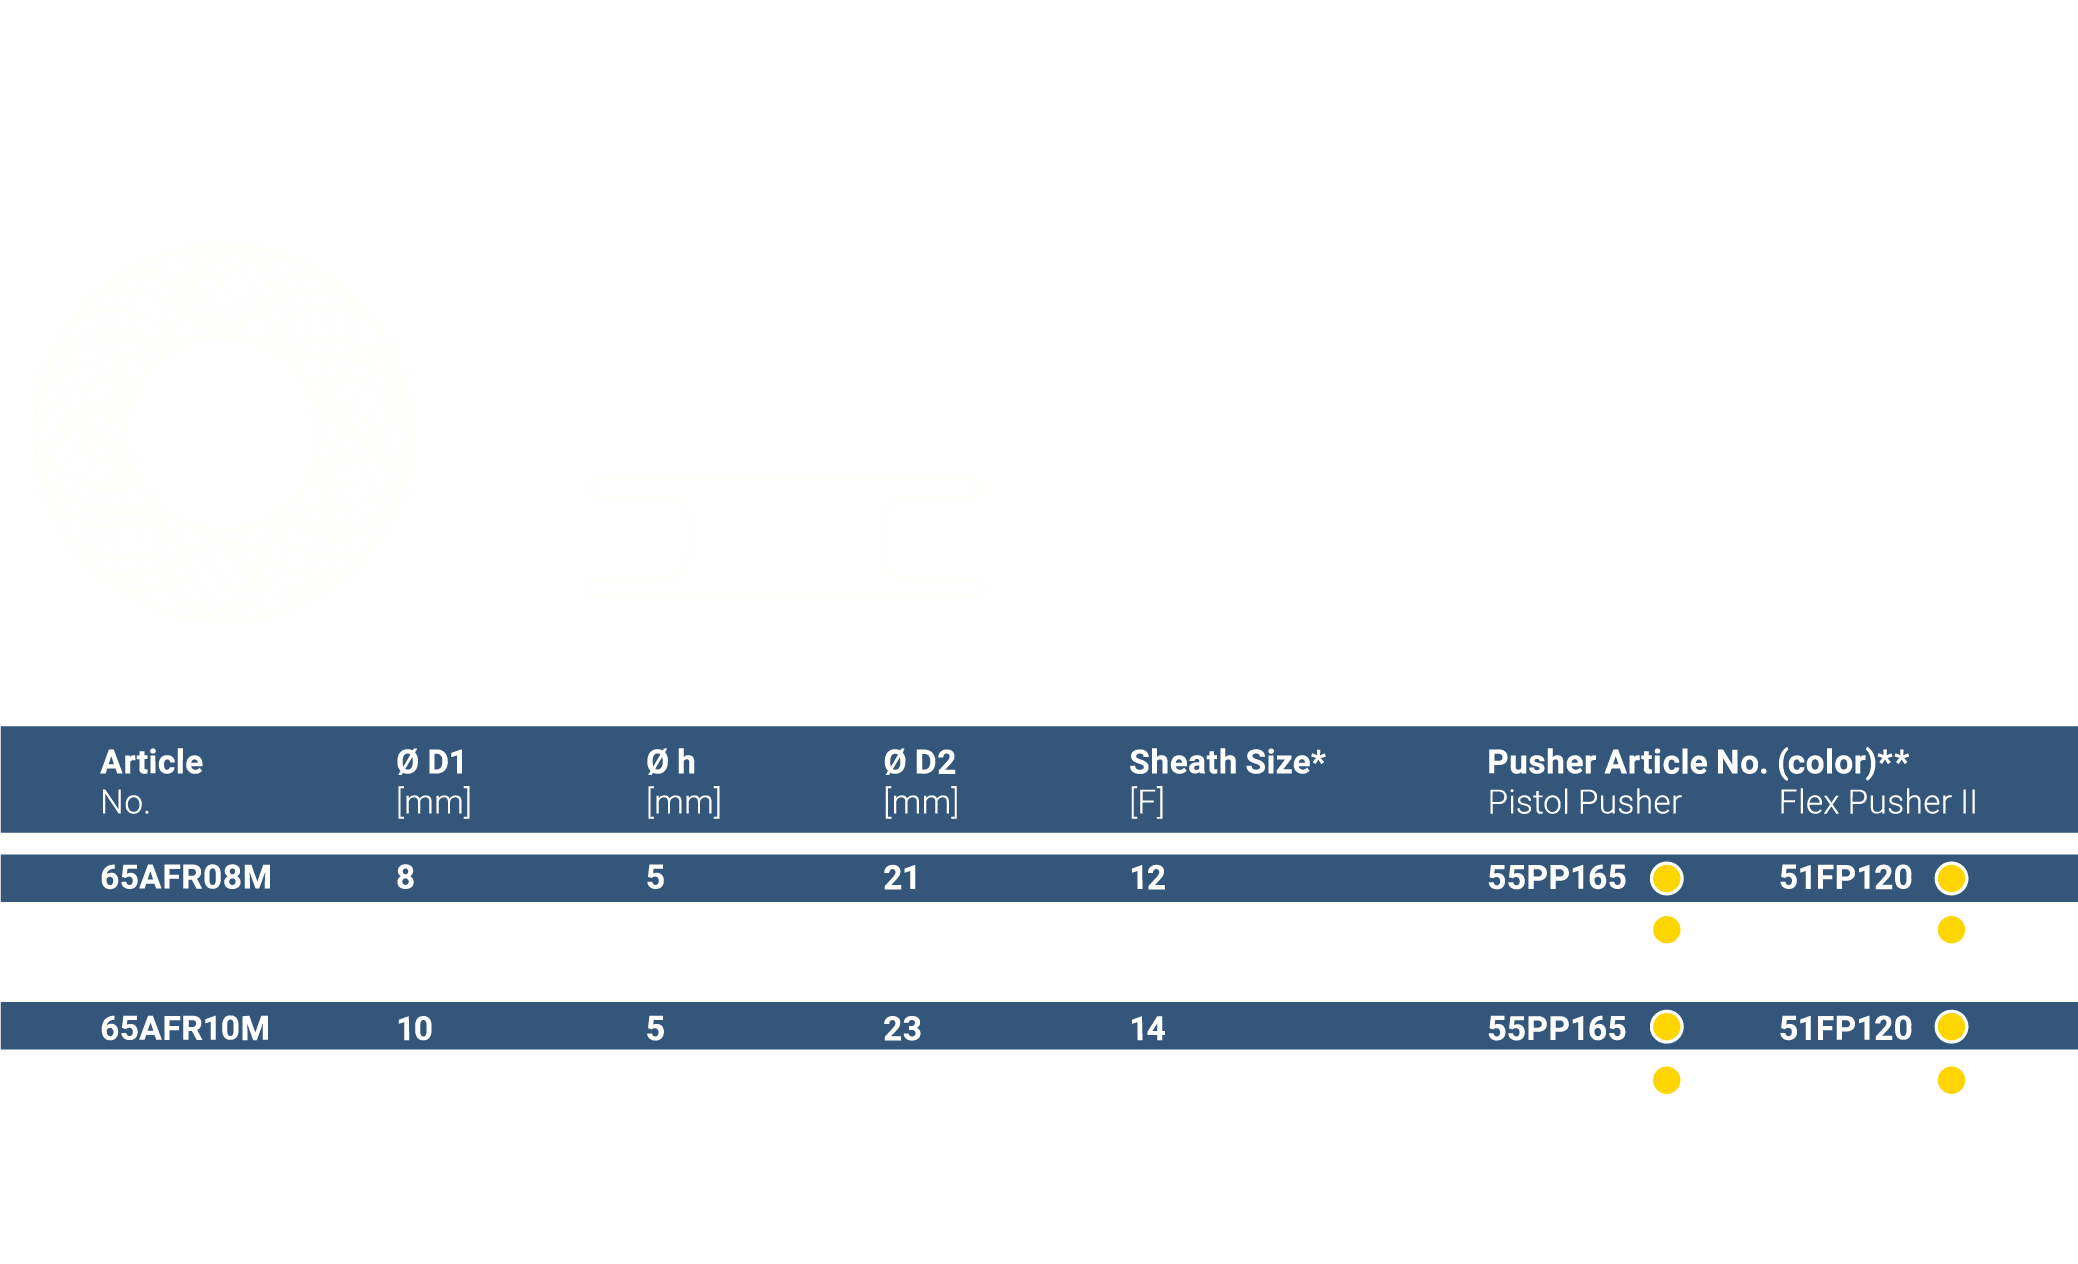 afr product specifications